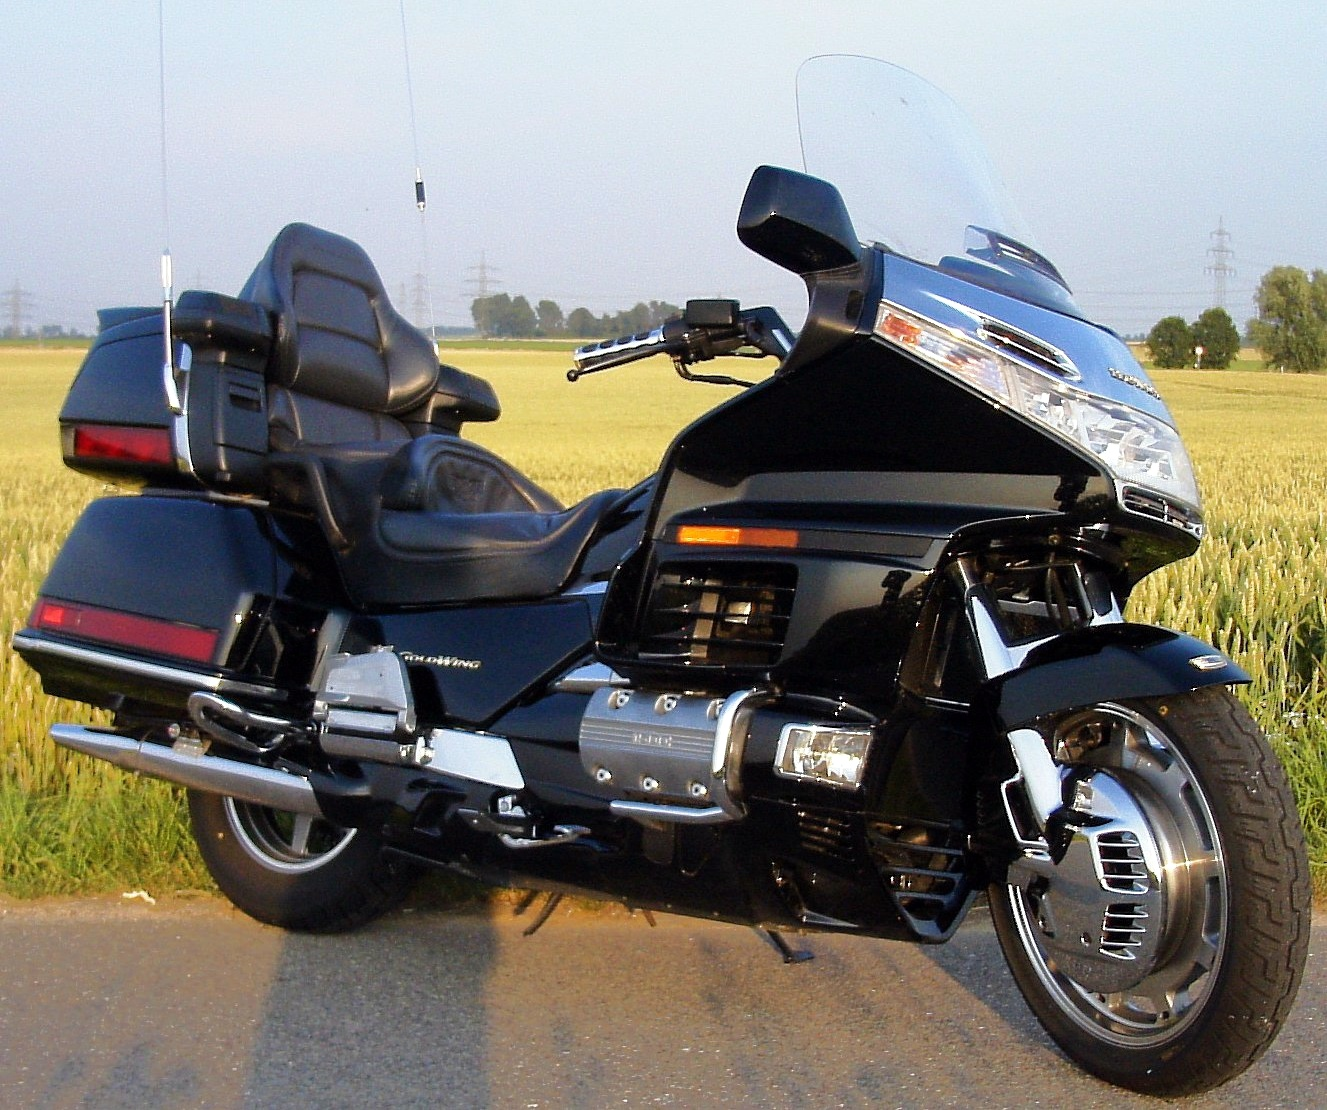 Honda GL 1800 Gold Wing 2013 images #83173